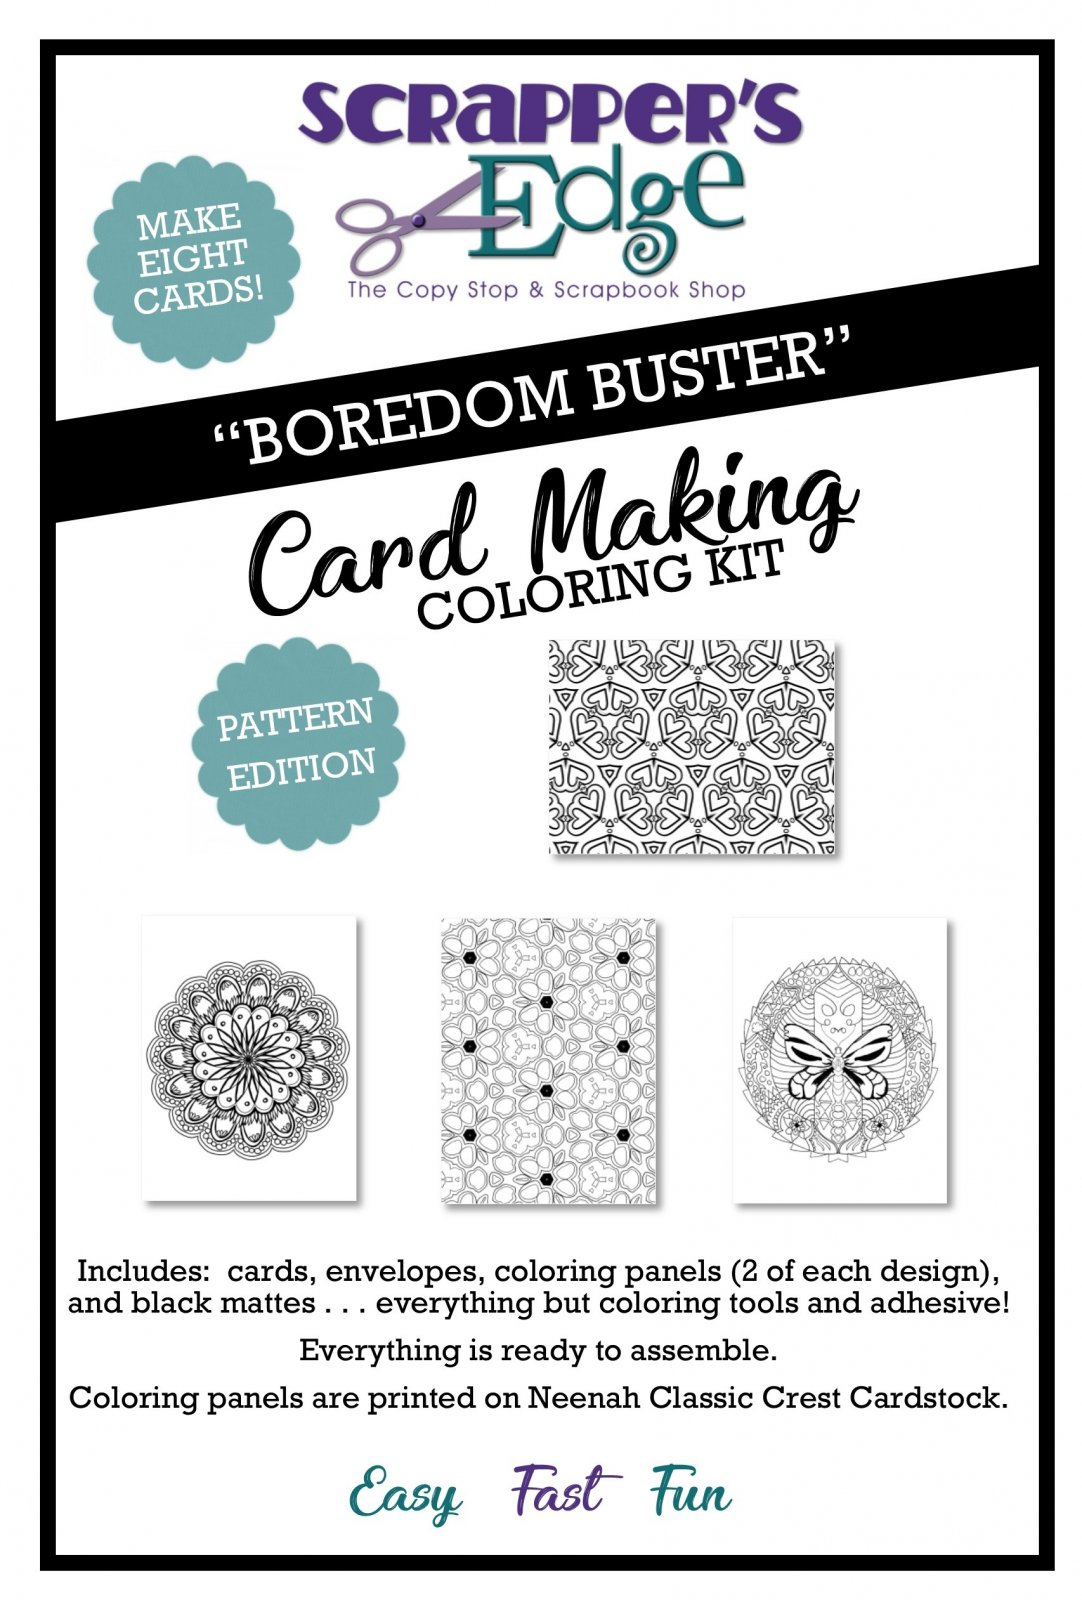 Boredom Buster Cardmaking Coloring Kit  - PATTERN edition